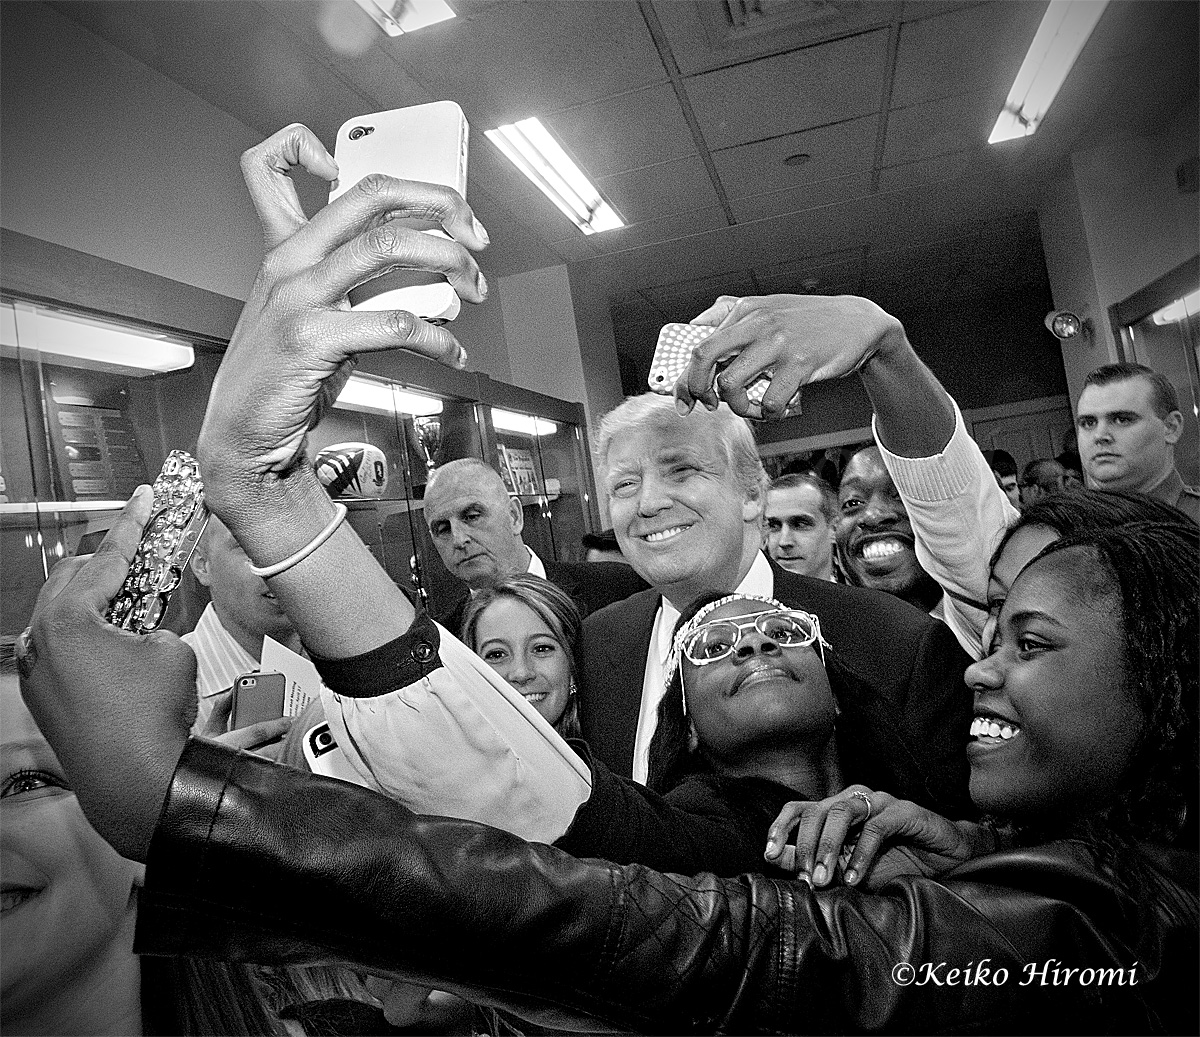 April 27, 2015: New England College, Henniker, NH: Presidential Hopeful and American business man Donald Trump taking a selfie with students at New England College, Henniker, NH.